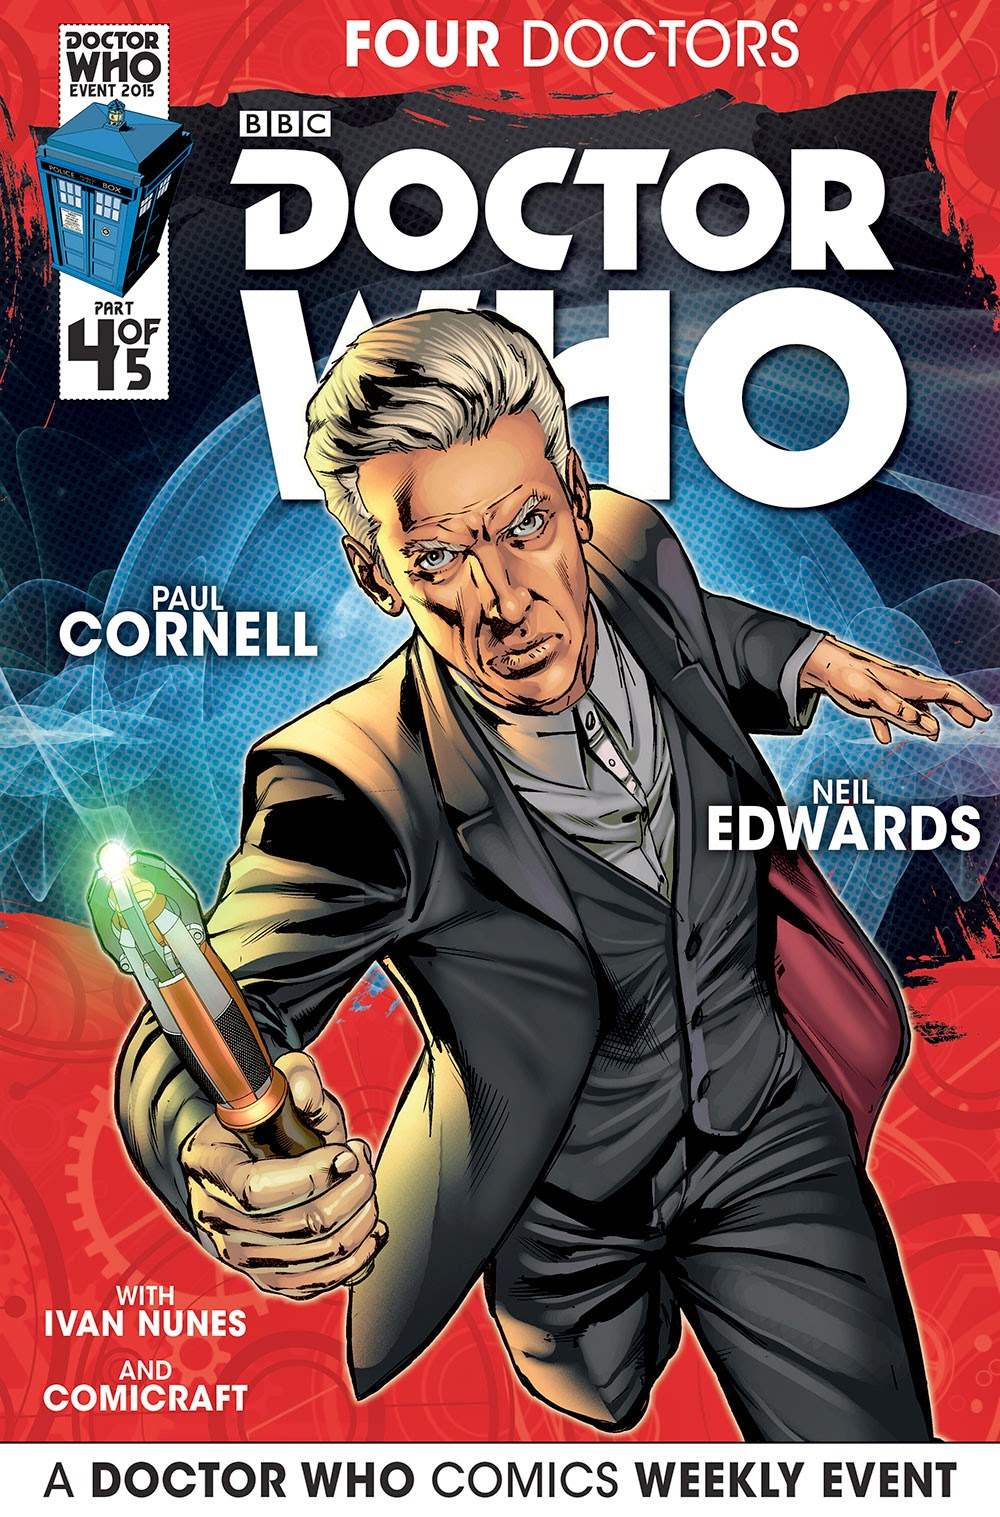 Four doctors issue 4a